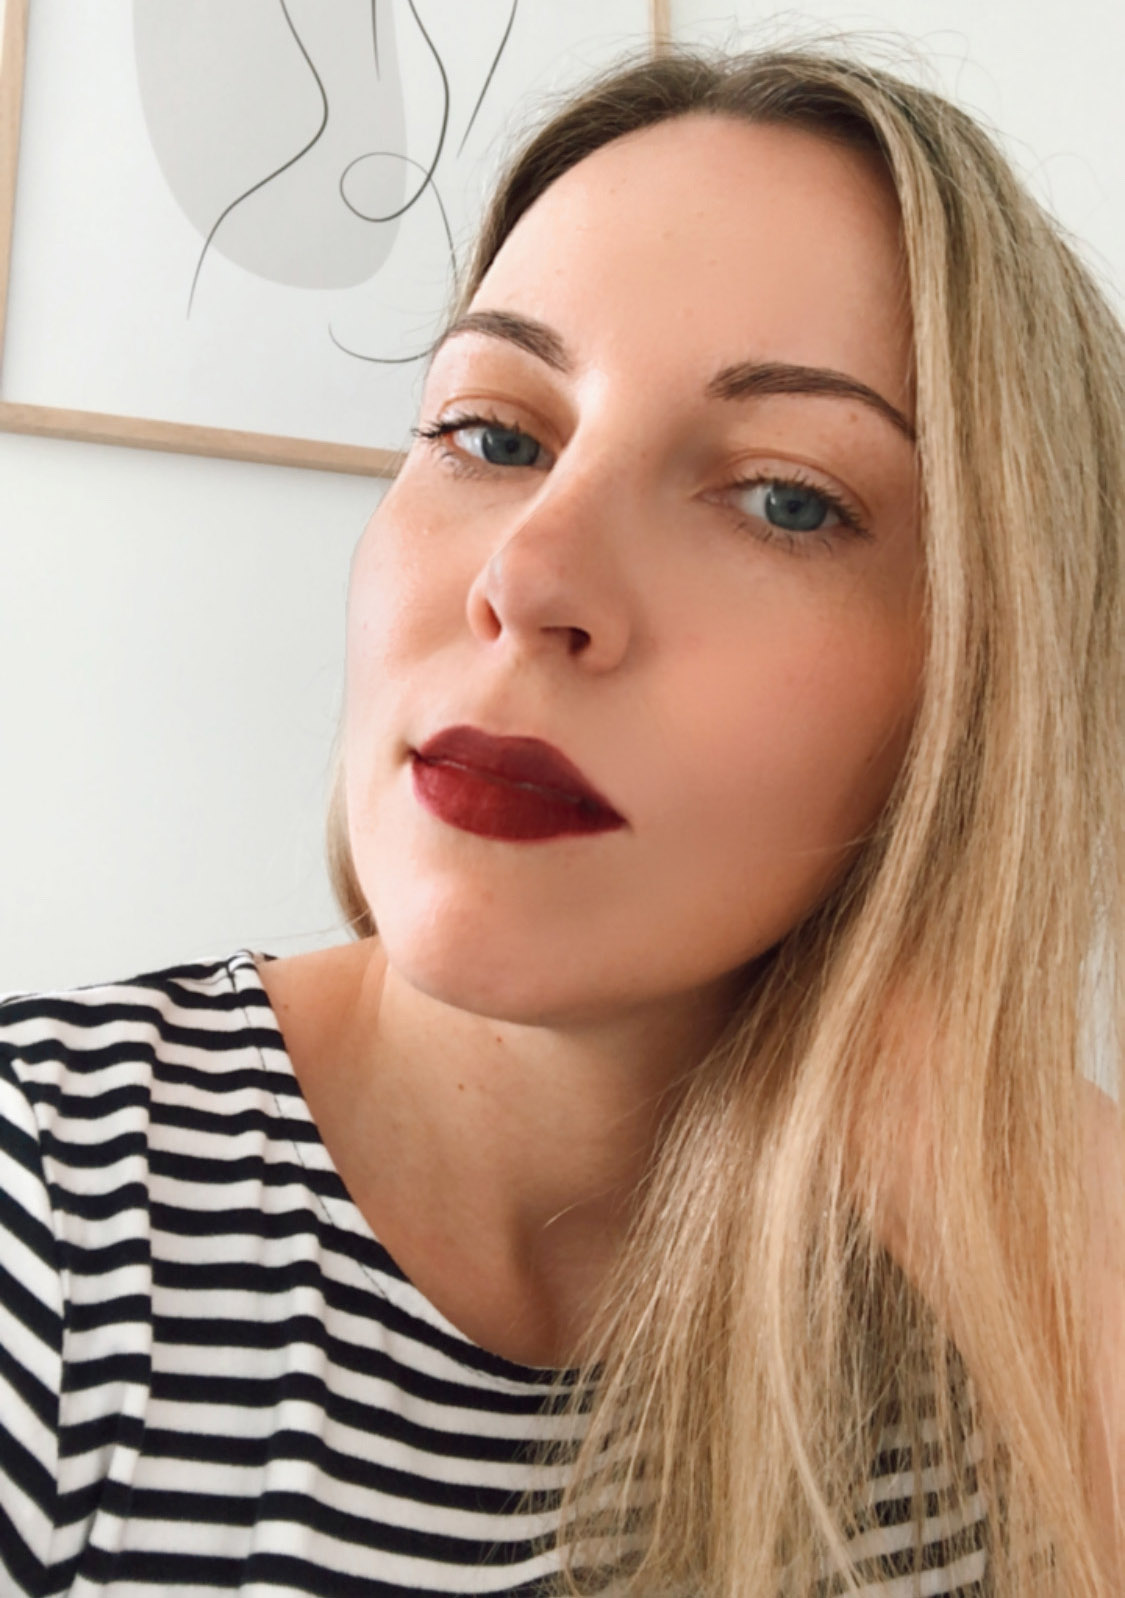 Johnny Concert Maudit Mad Moiselle Organic Matte Lipstick swatches